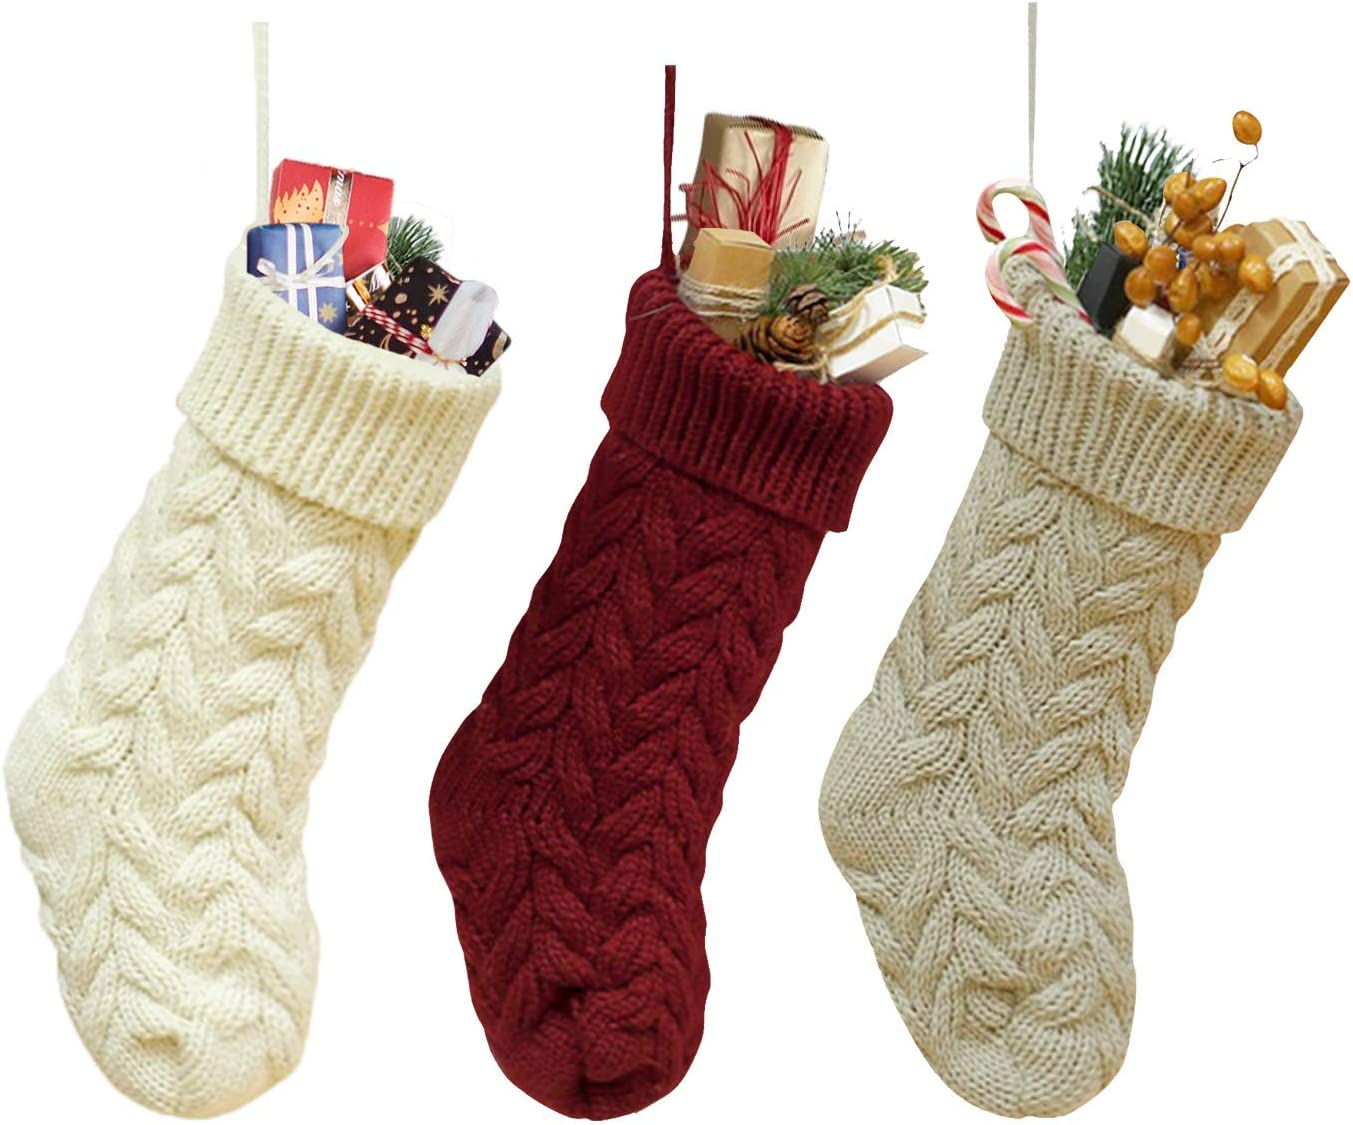 Dailybella 3 Pack Classic Christmas Knit Stockings 14